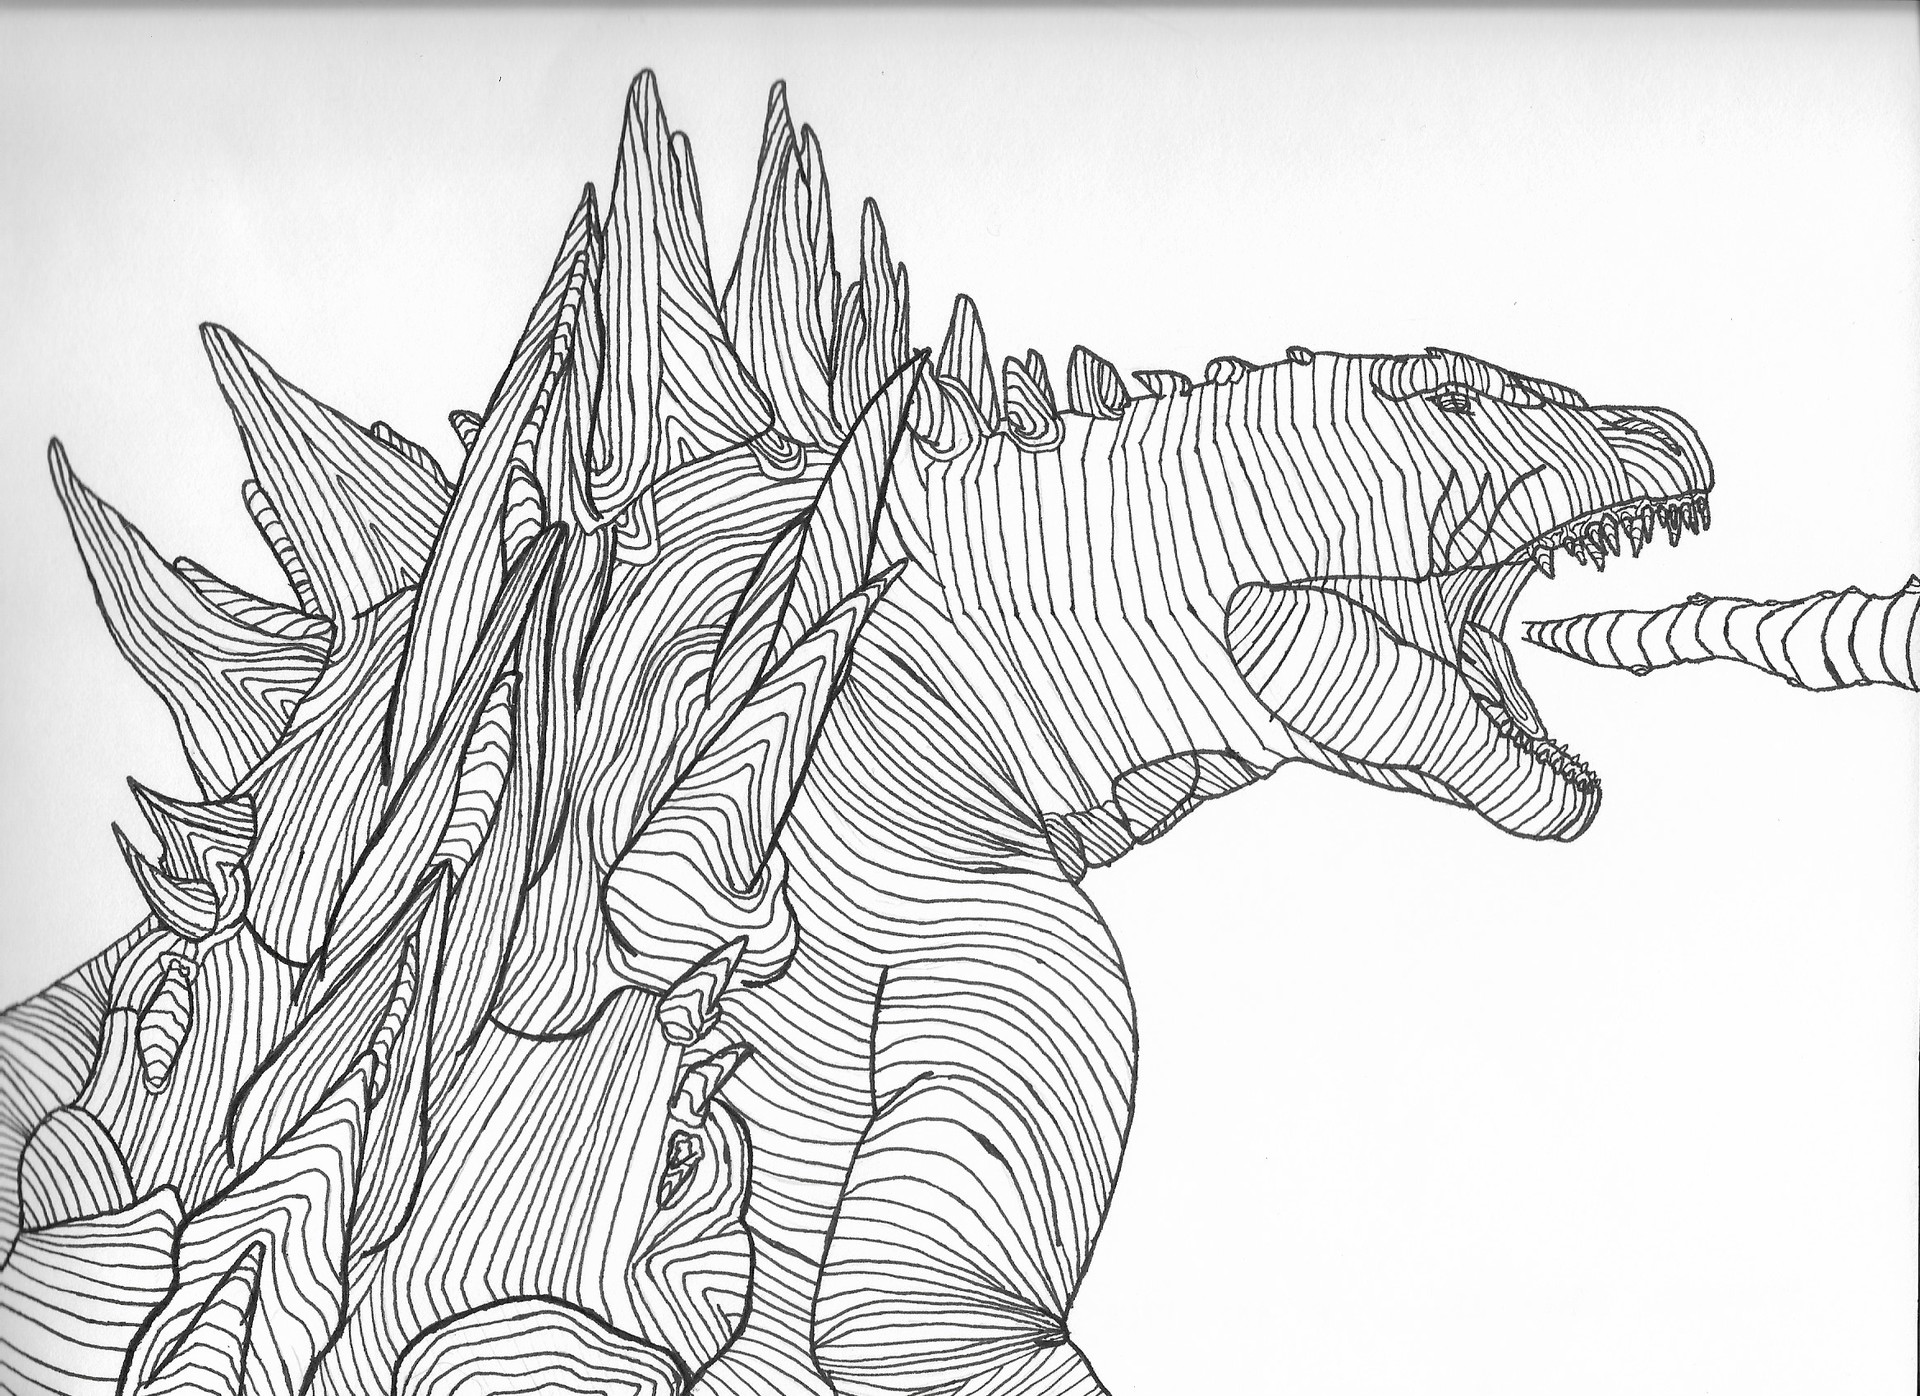 how to draw a godzilla godzilla sketch by sawuinhaff on deviantart a how to godzilla draw